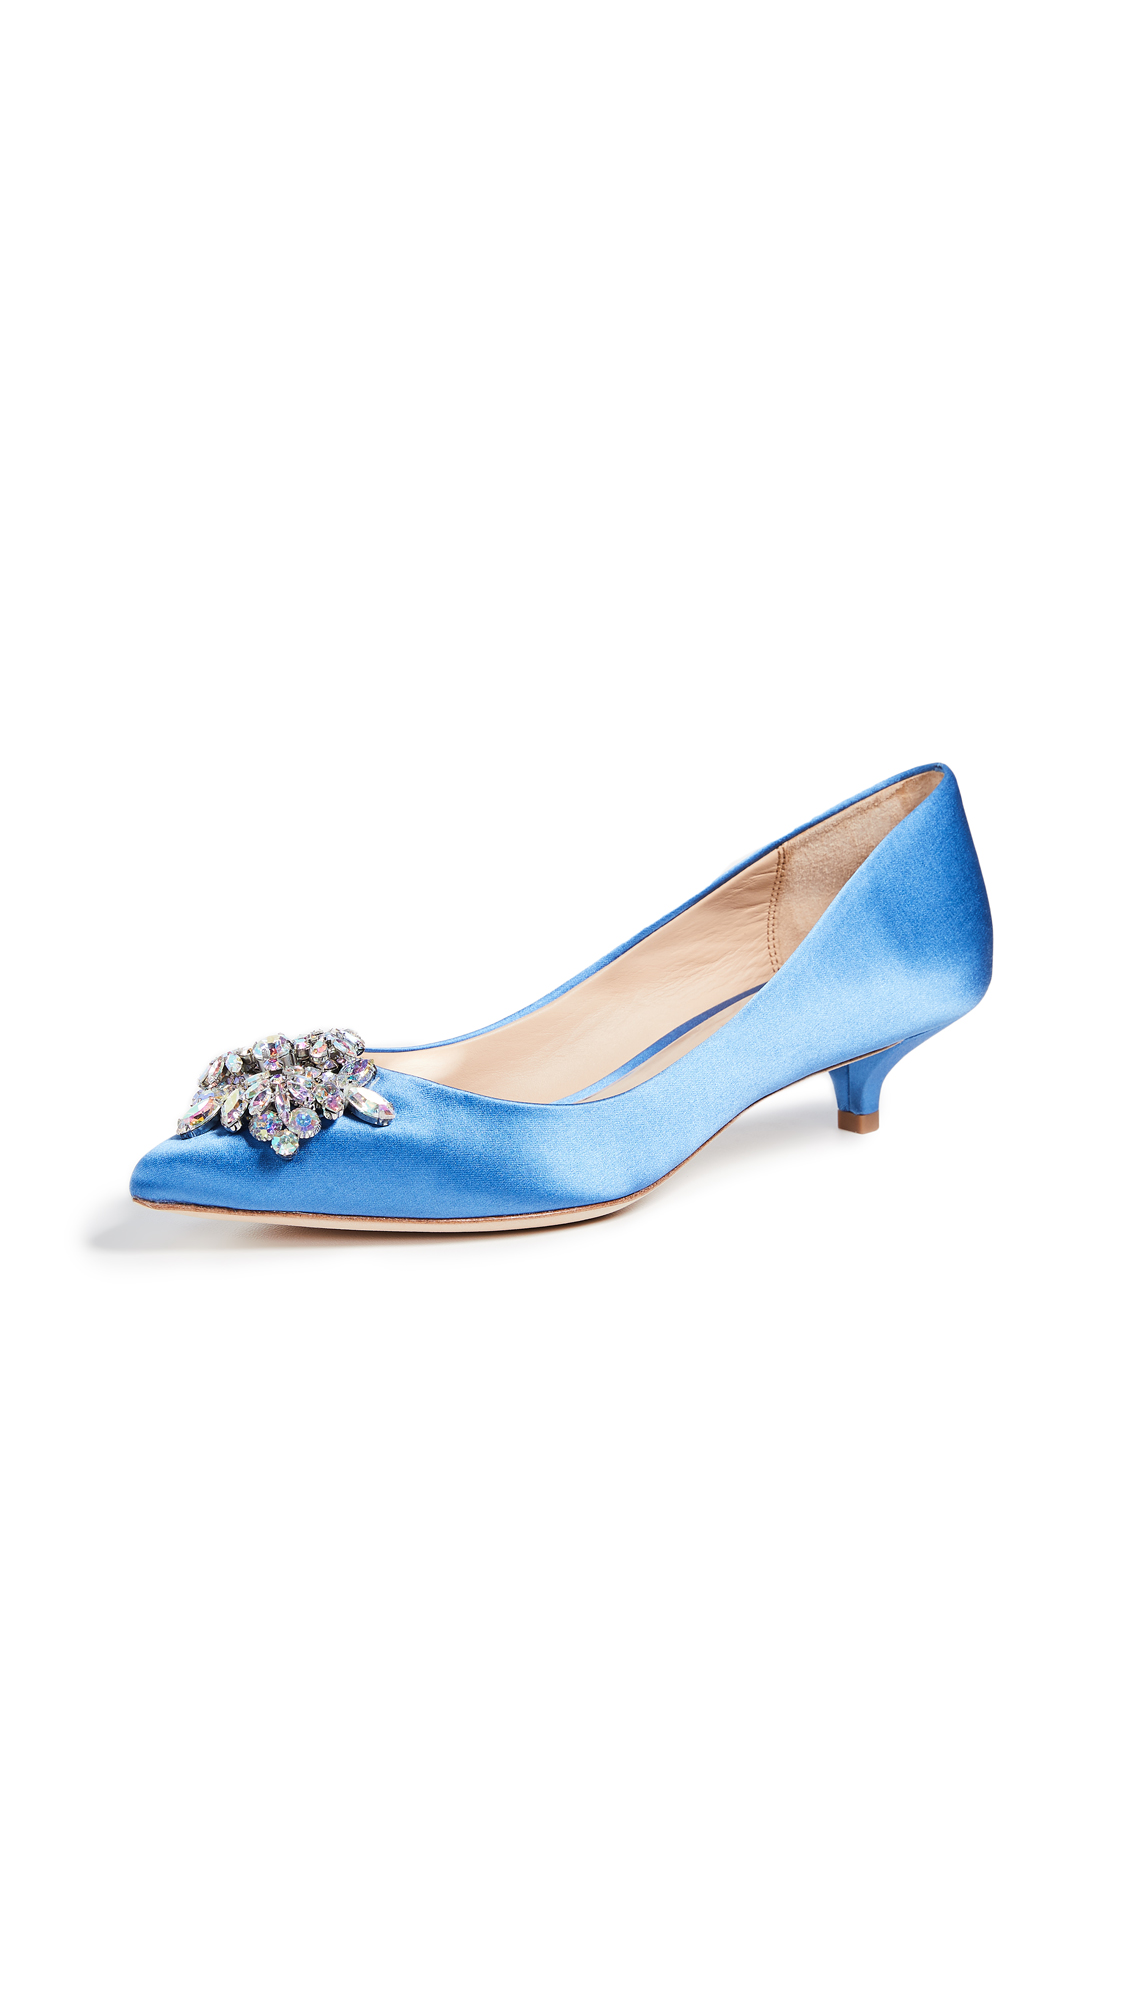 Badgley Mischka Vail Kitten Heel Pumps - Sky Blue